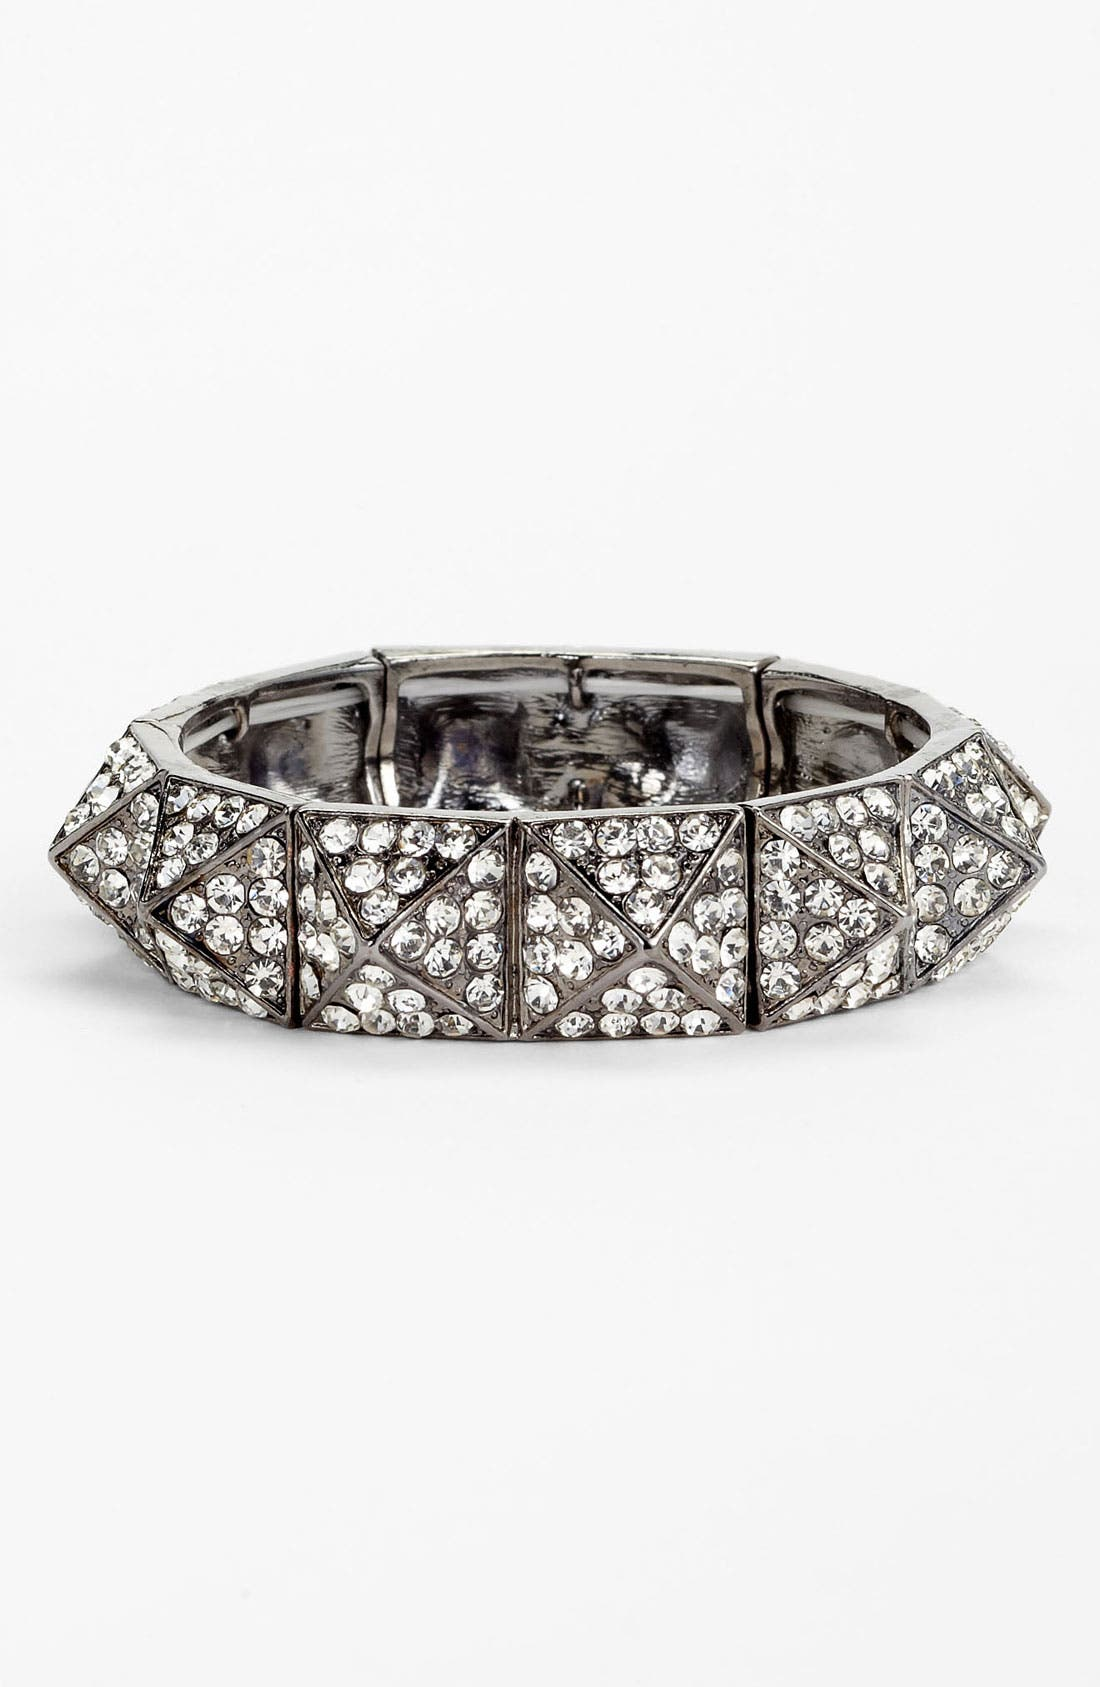 Alternate Image 1 Selected - BP. Rhinestone Pyramid Bracelet